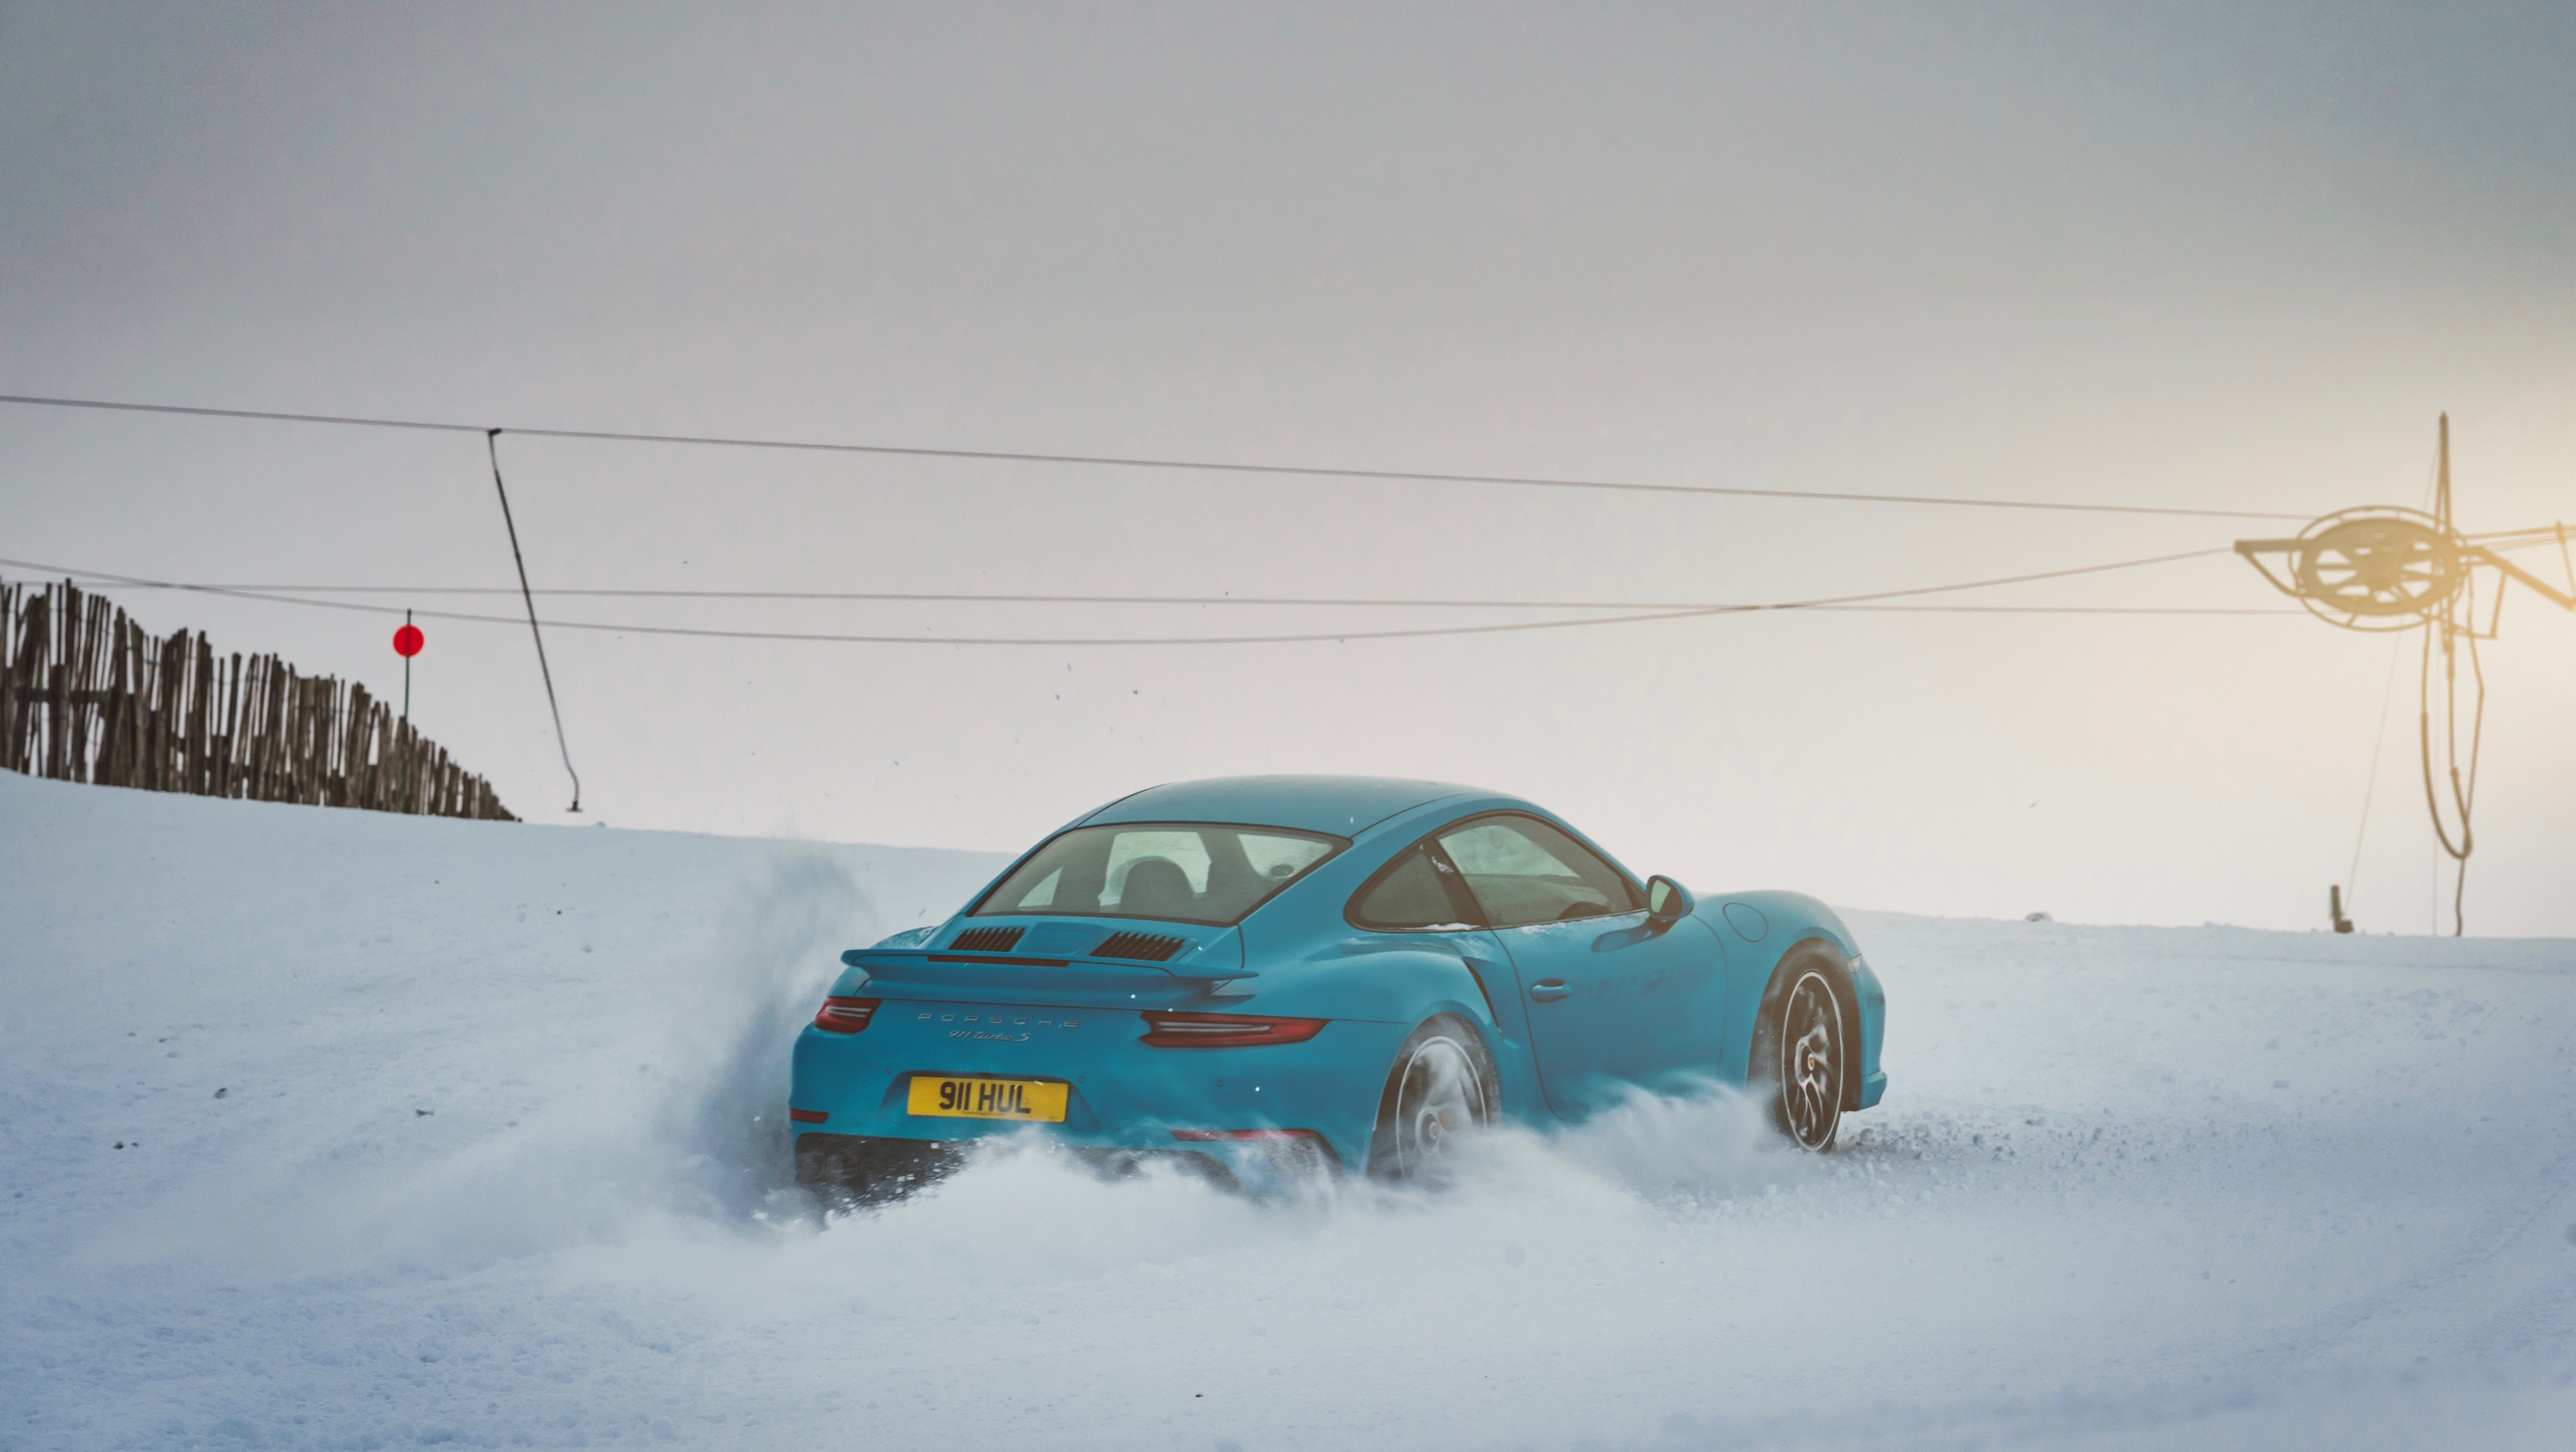 Head to head: new Ferrari 488 Pista vs Porsche 911 GT3 RS